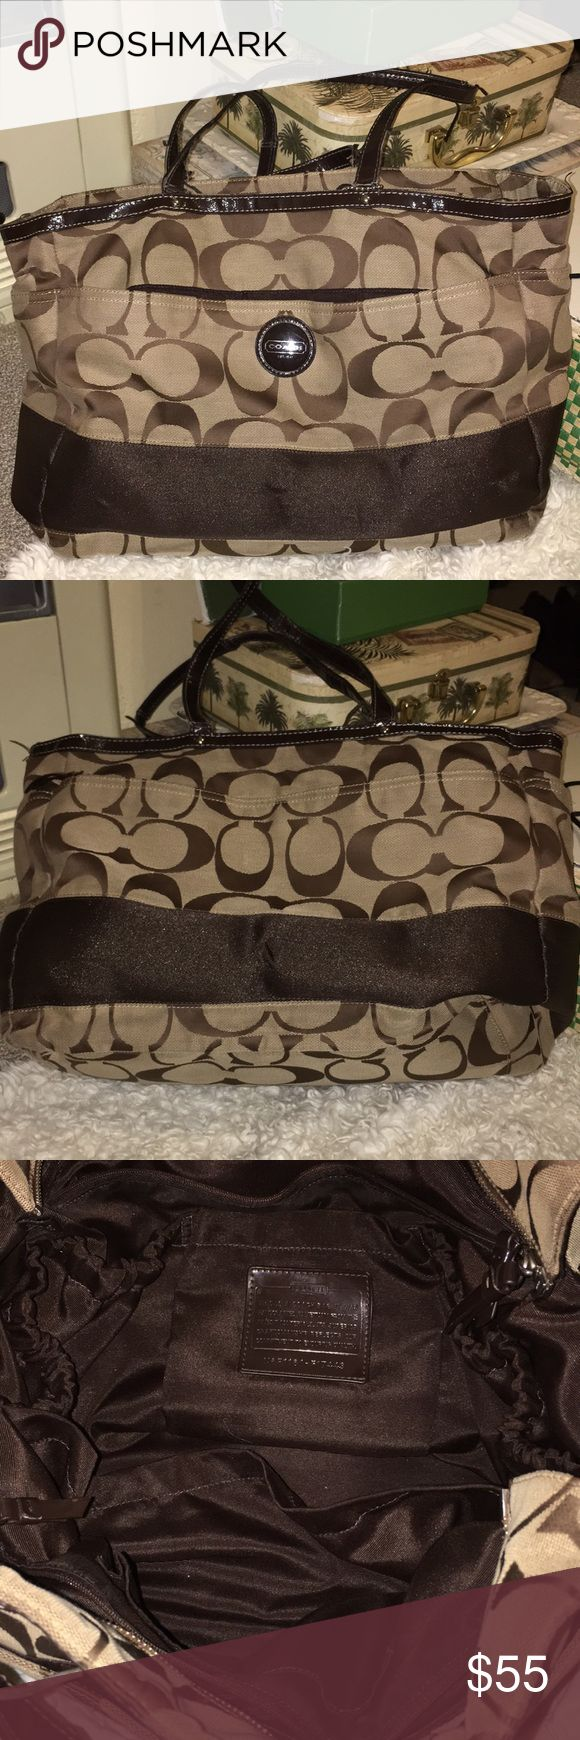 Coach Diaper Bag Excellent condition with the exception of wear on the handles. Shown in pic. Hardly used at all. This is a steal! Coach Bags Baby Bags